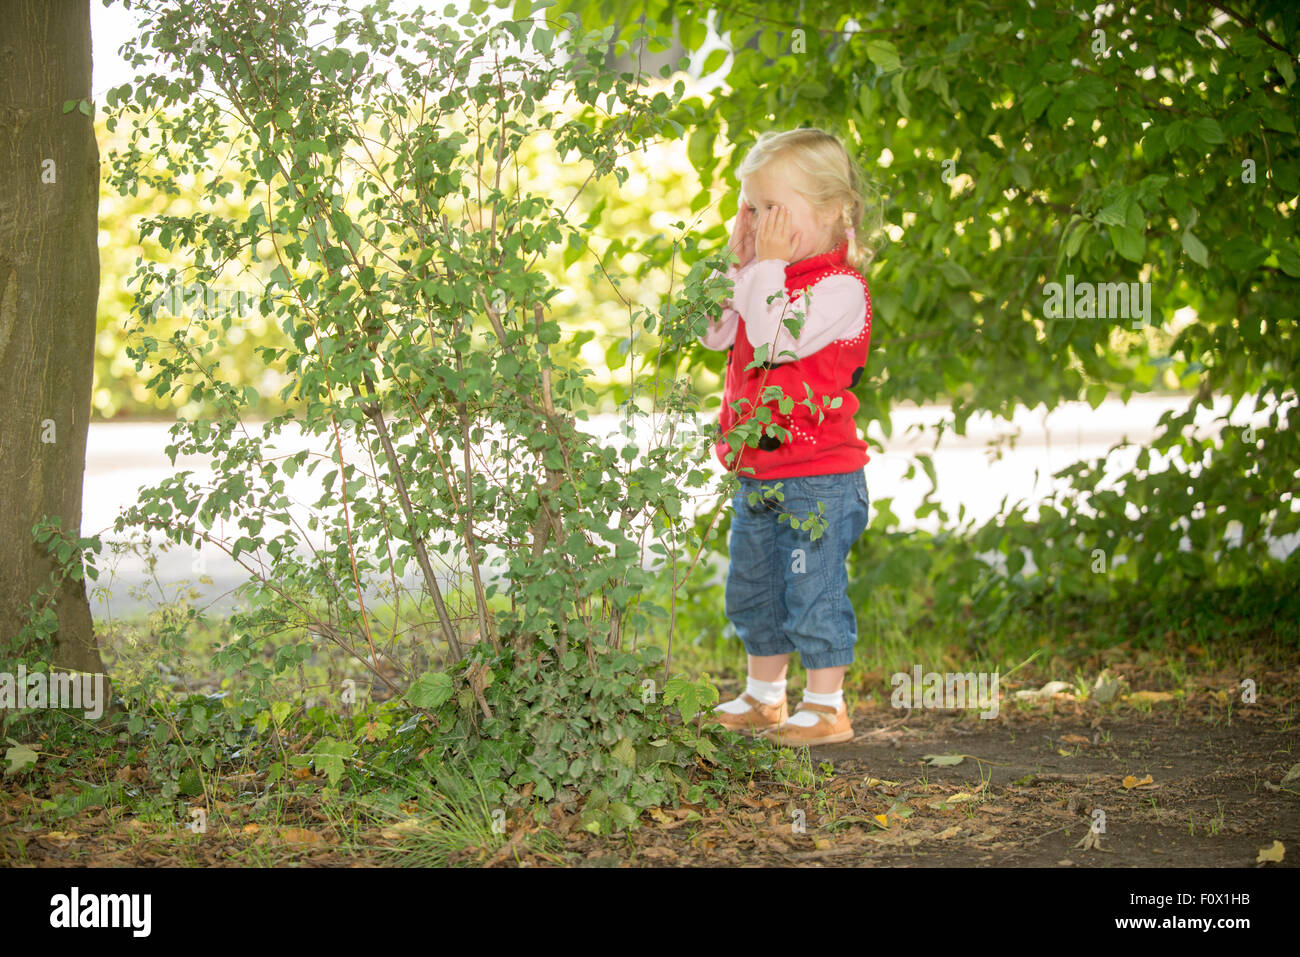 Young child playing hide and seek. - Stock Image